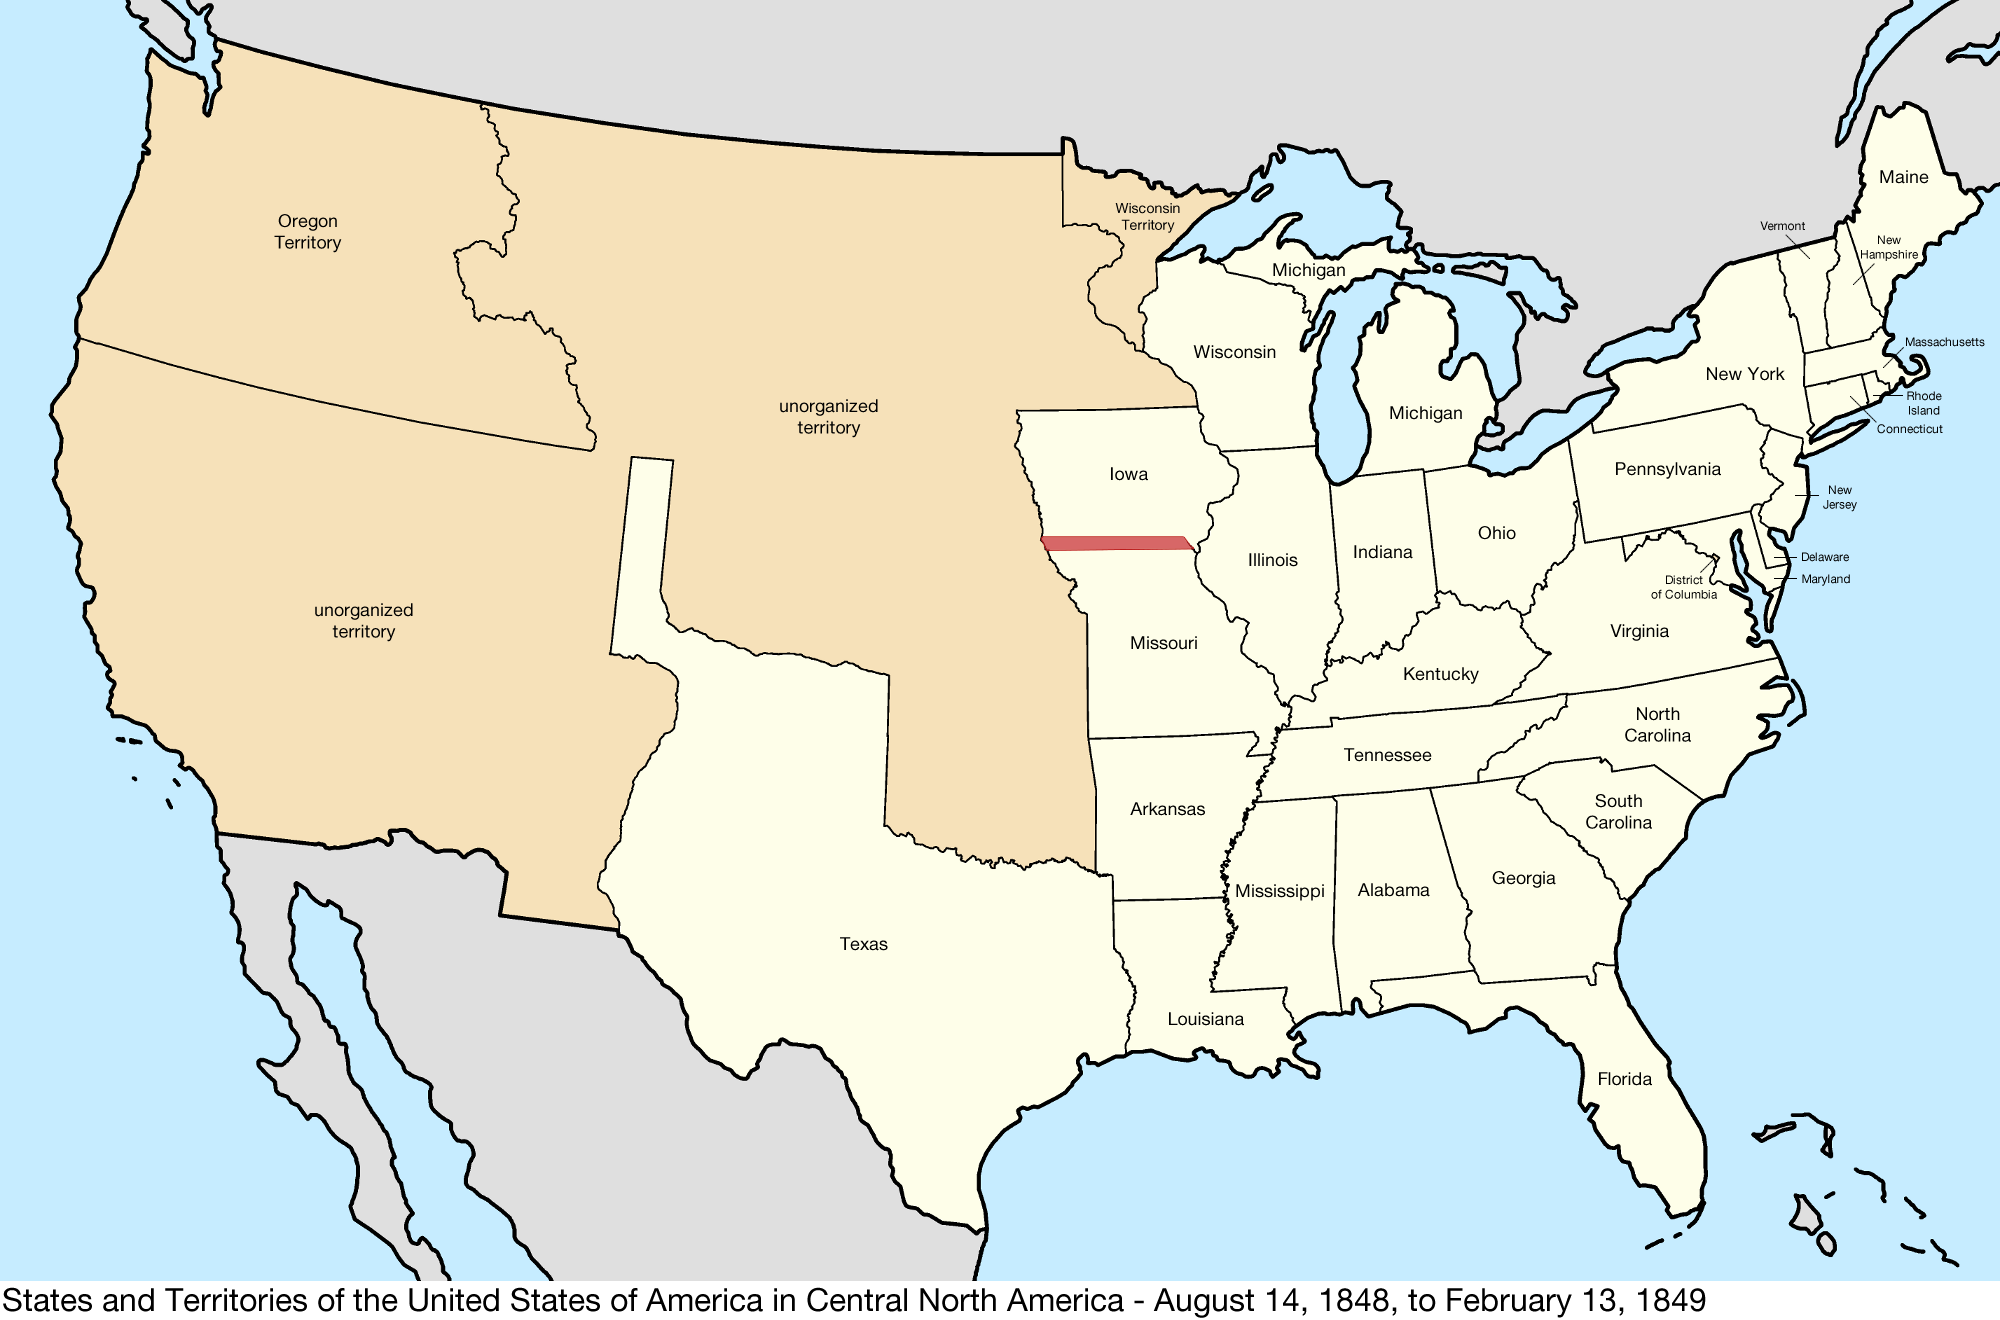 File:United States Central map 1848-08-14 to 1849-02-13.png ... on u.s. railroad map 1849, california map 1849, mexico map 1849, wisconsin map 1849, arizona map 1849, boston map 1849, texas map 1849, world map 1849, greece map 1849, nevada map 1849, europe map 1849,